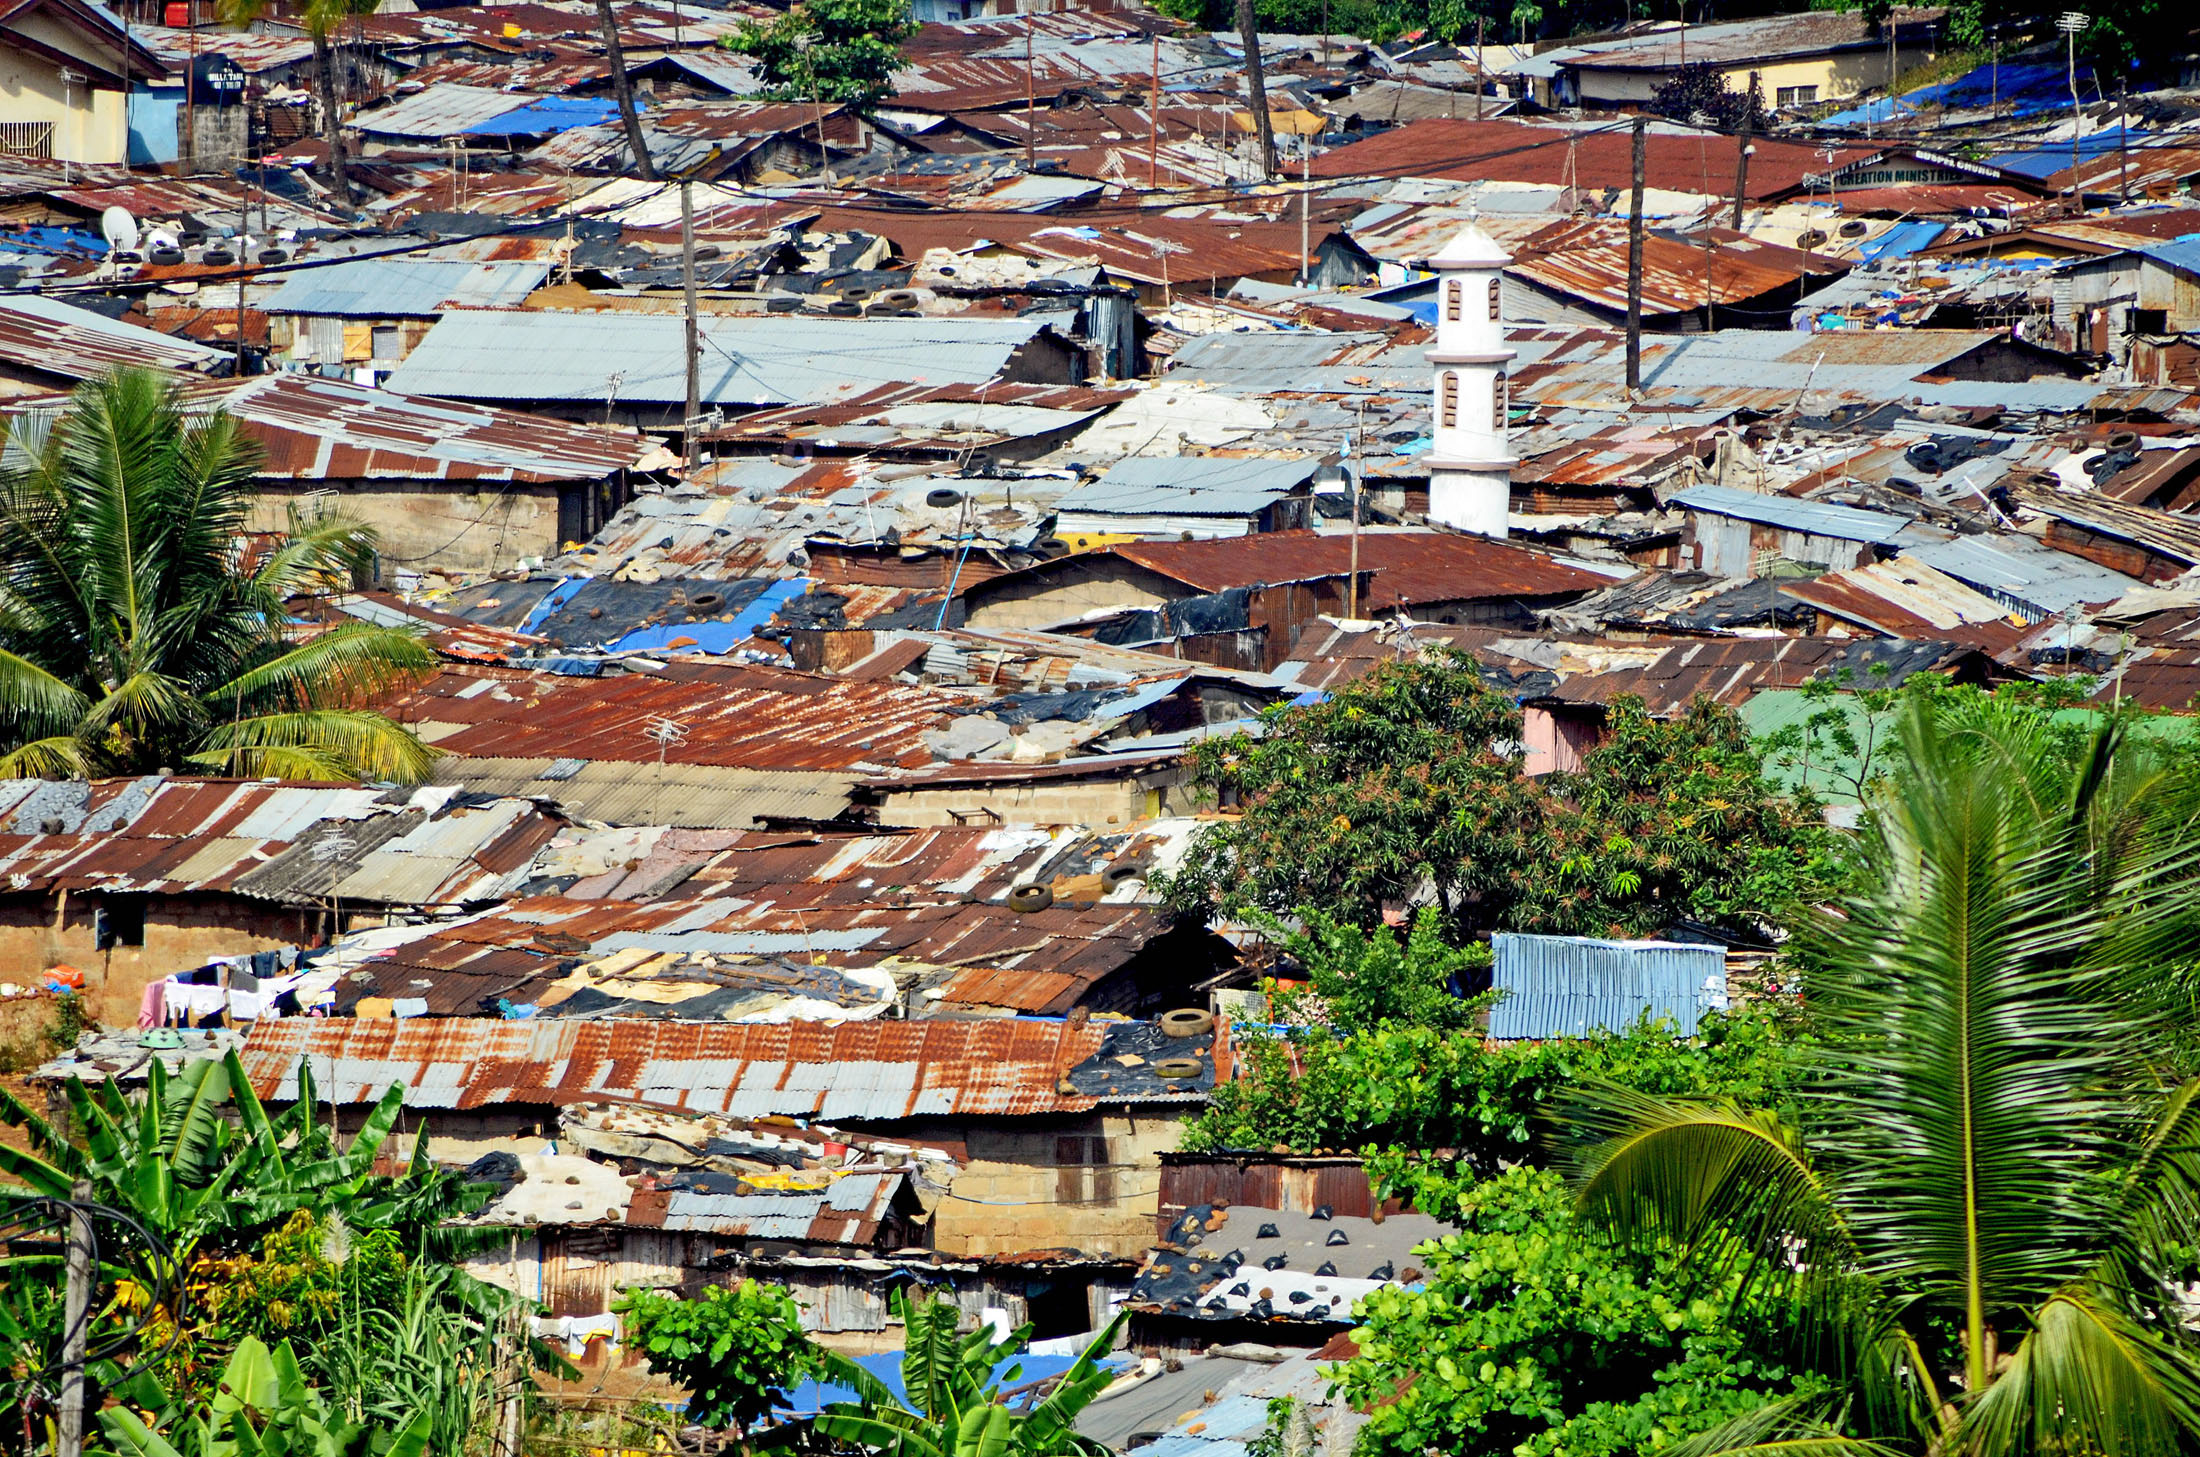 Despite economic growth, most of Sierra Leone's population lives below the poverty line